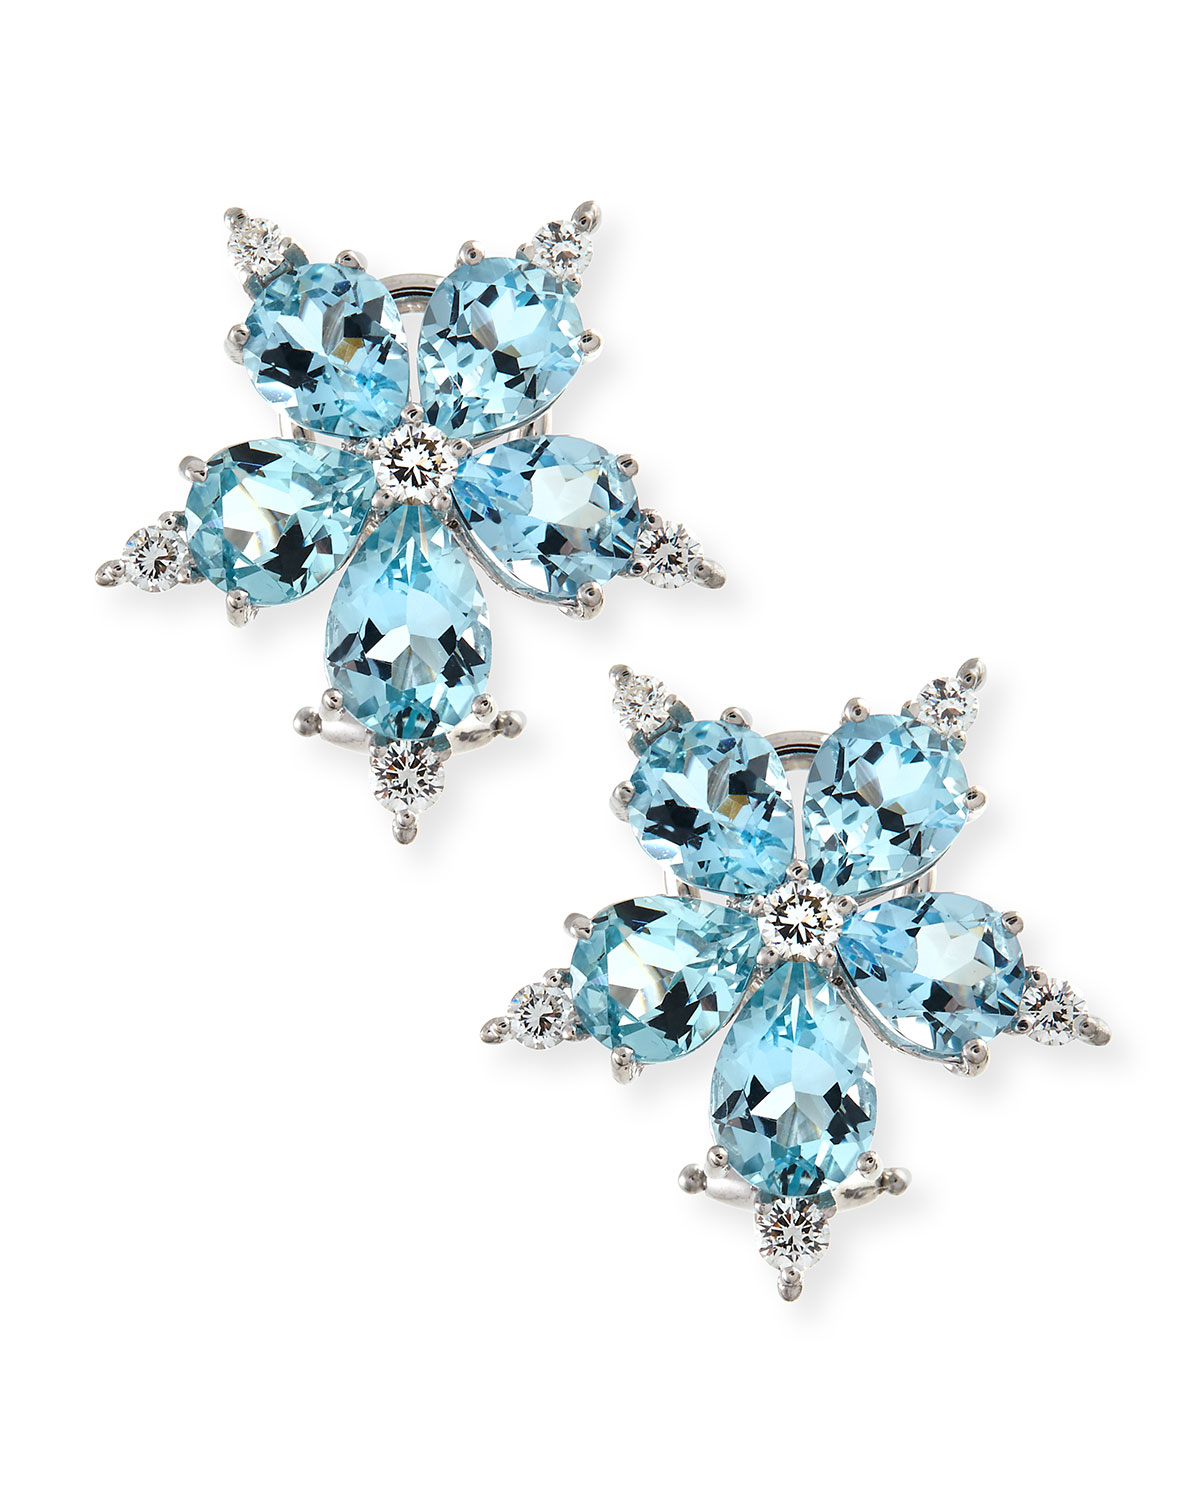 aqua stud earrings jewelry marine eternity studs l classy aquamarine